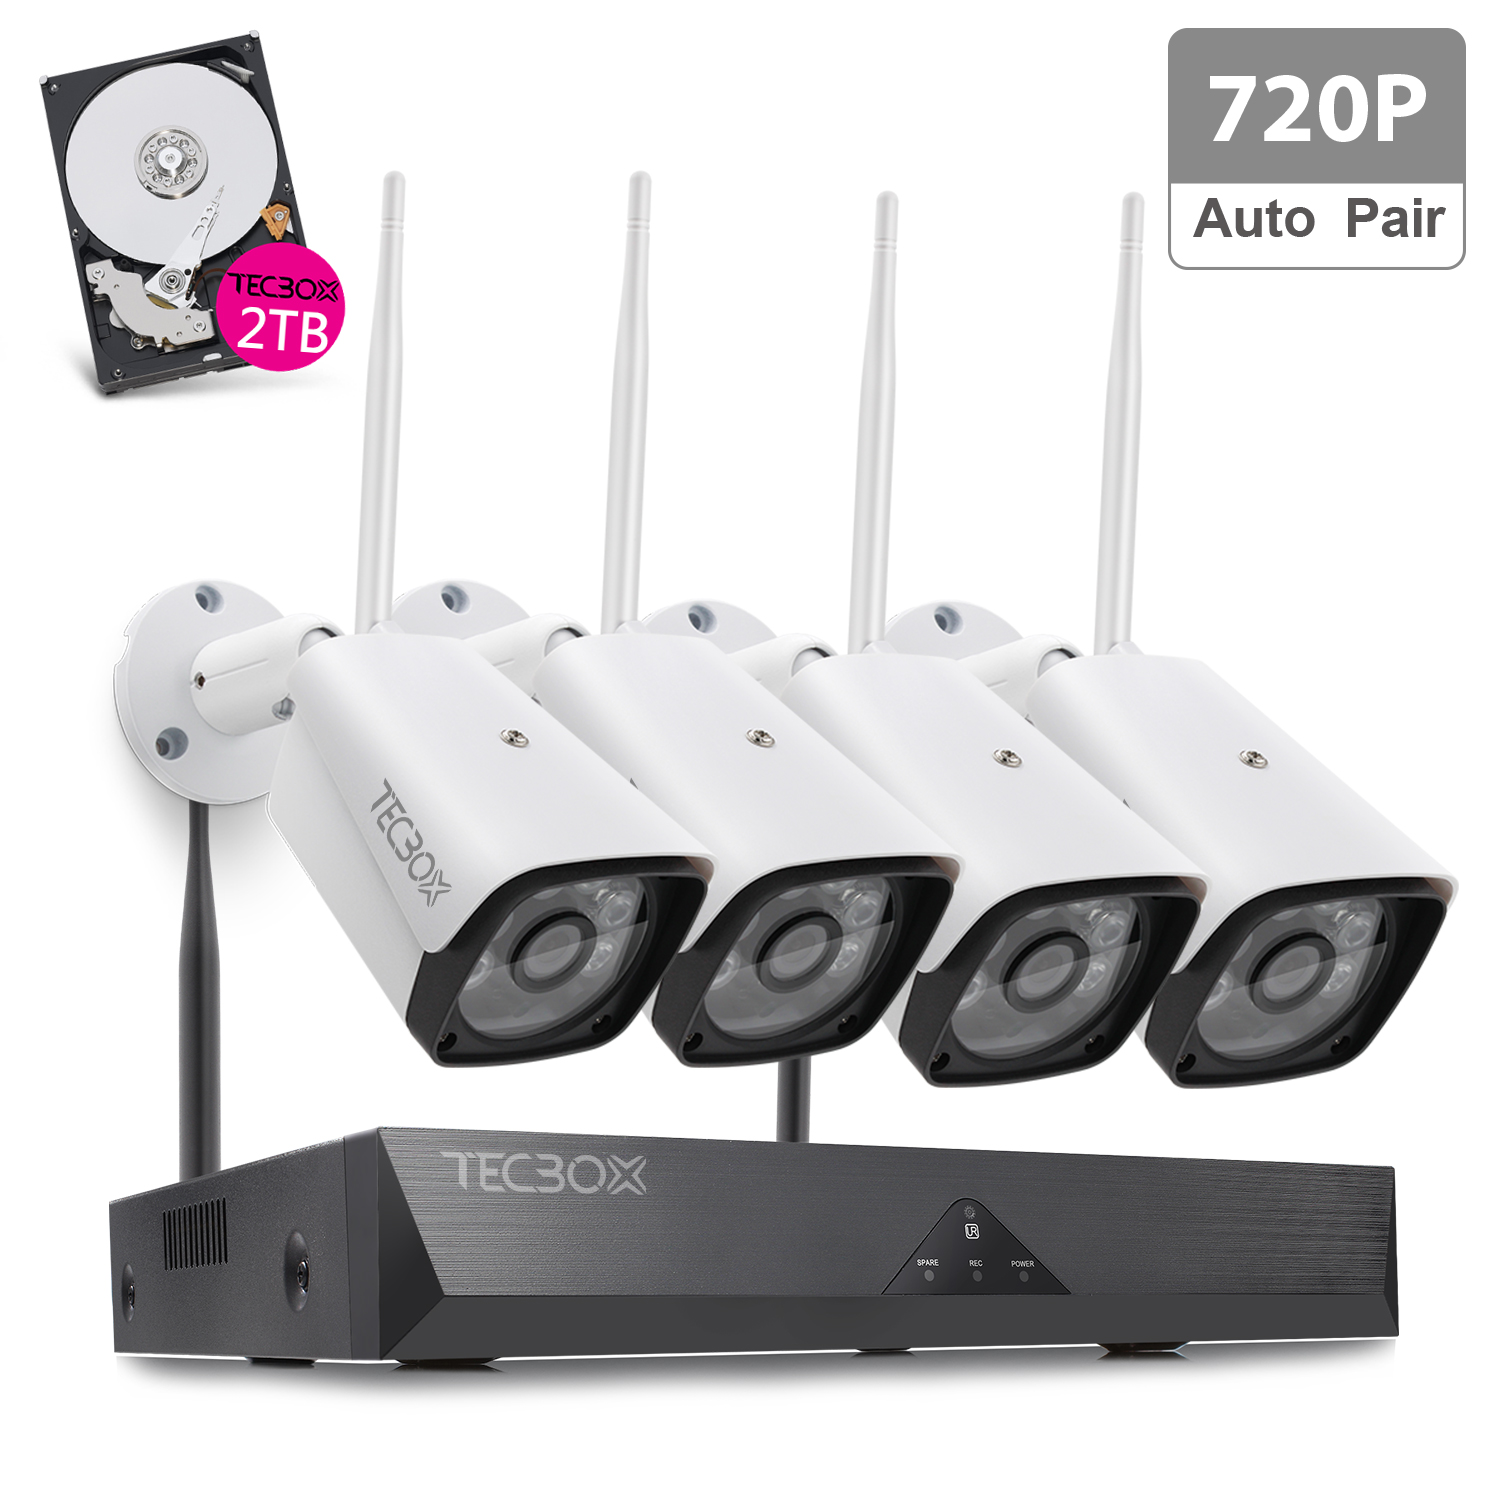 TECBOX 4CH Auto Pair Wireless Security Camera System 720P HDMI NVR, 2TB Hard Drive, 4 x 720P HD Indoor/Outdoor Weatherproof Night Vision Wireless IP Cameras,View Remotely Wifi Security Camera